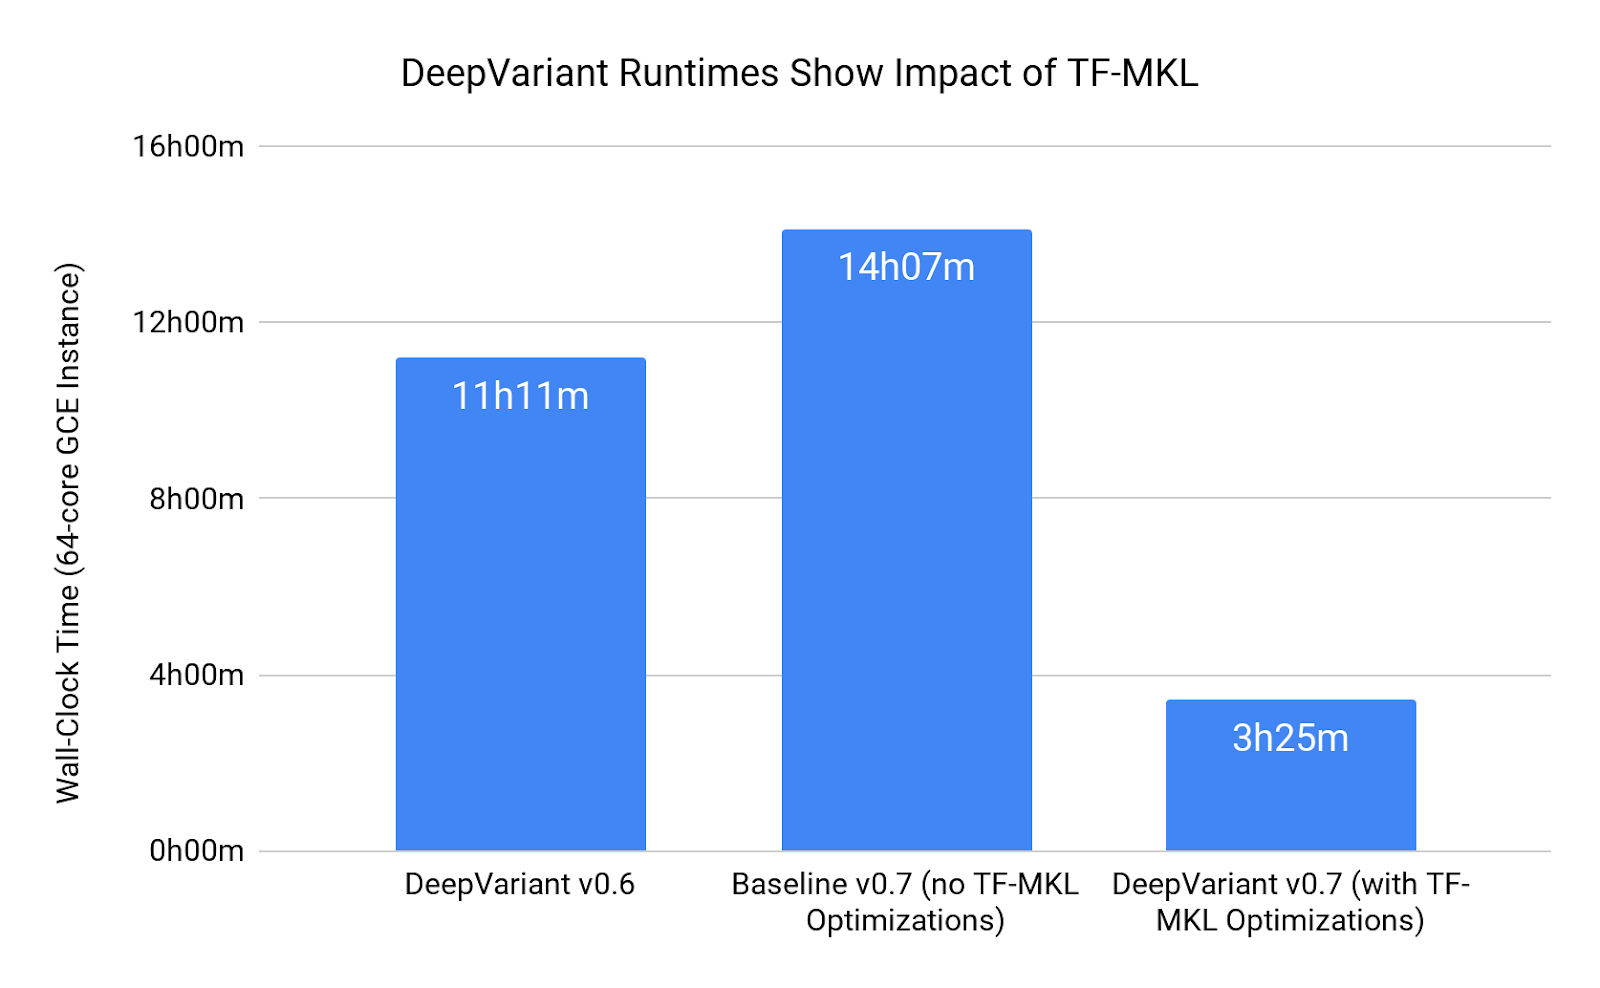 bar graph showing Runtime Speedup in DeepVariant v0.7 by Using TF-MKL